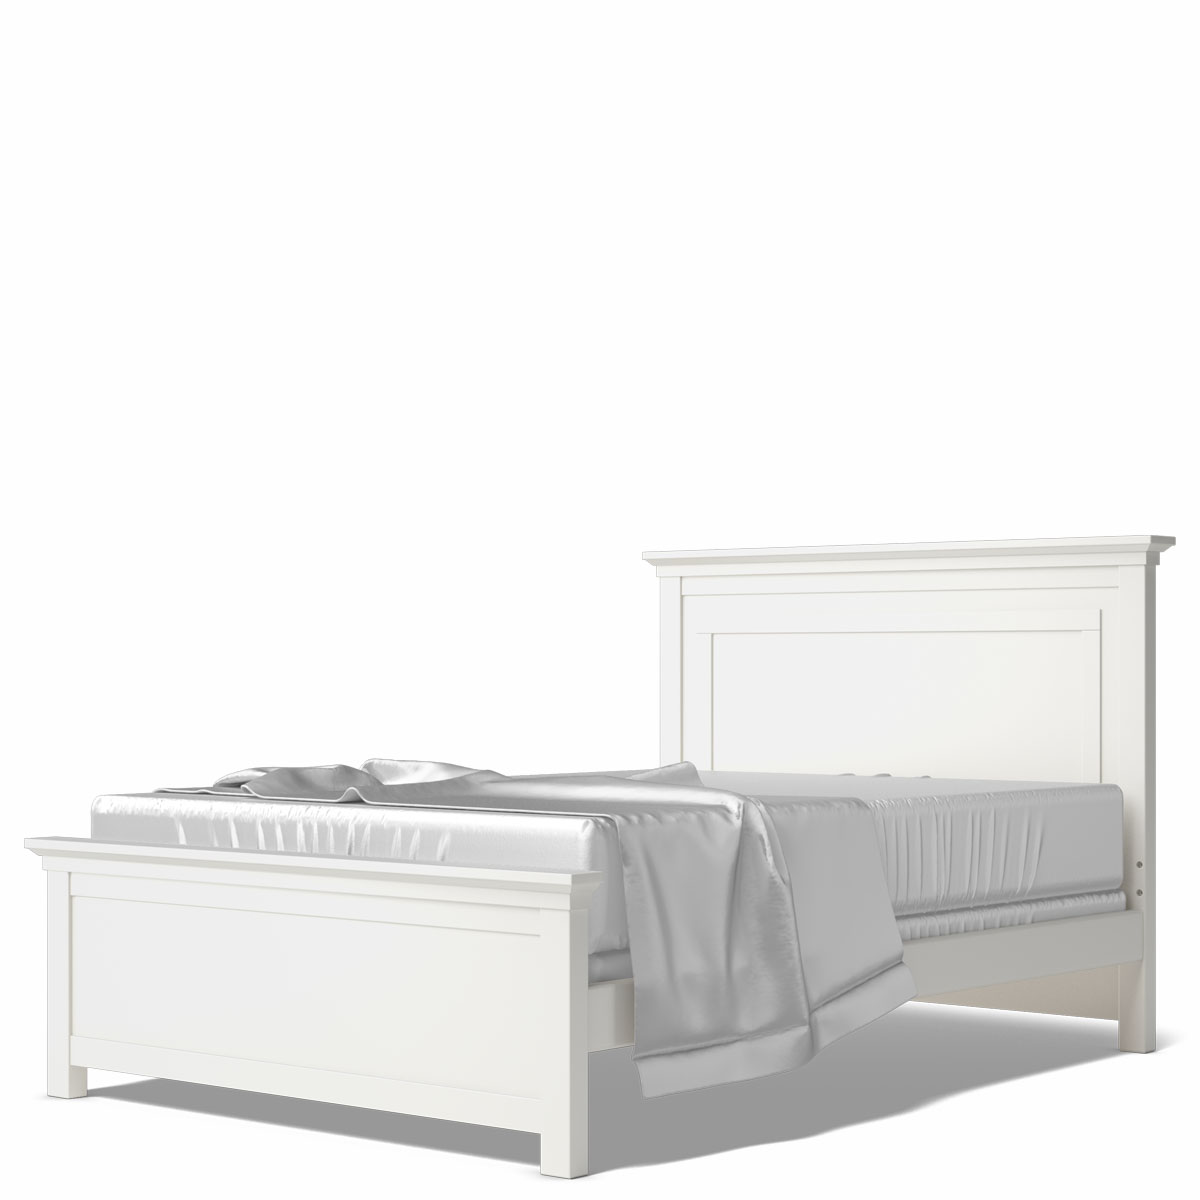 Romina Furniture Karisma Solid Panel Full Bed